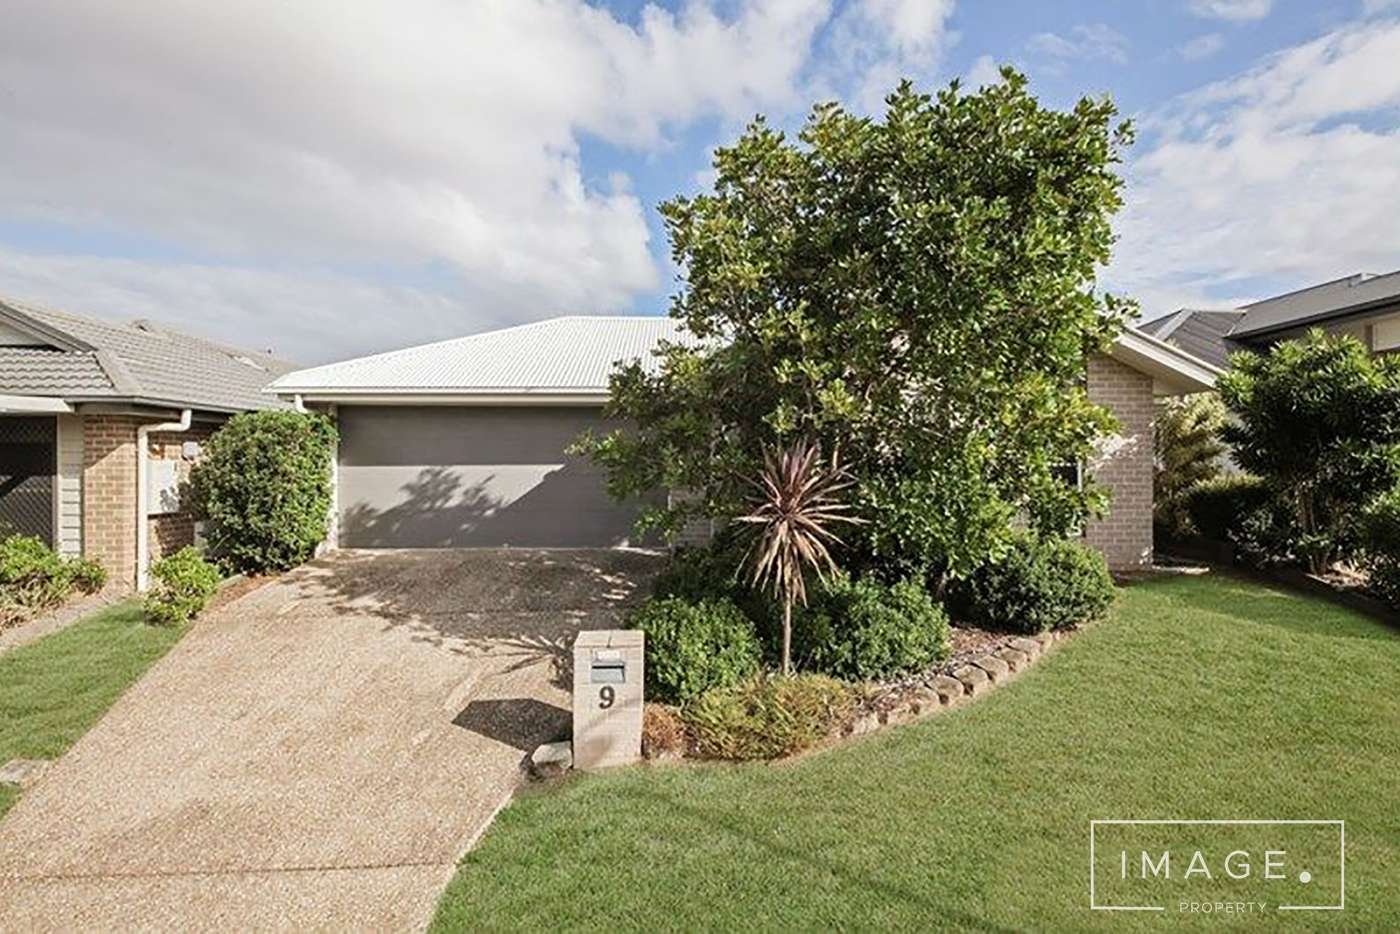 Main view of Homely house listing, 9 MELDRUM STREET, Kallangur QLD 4503